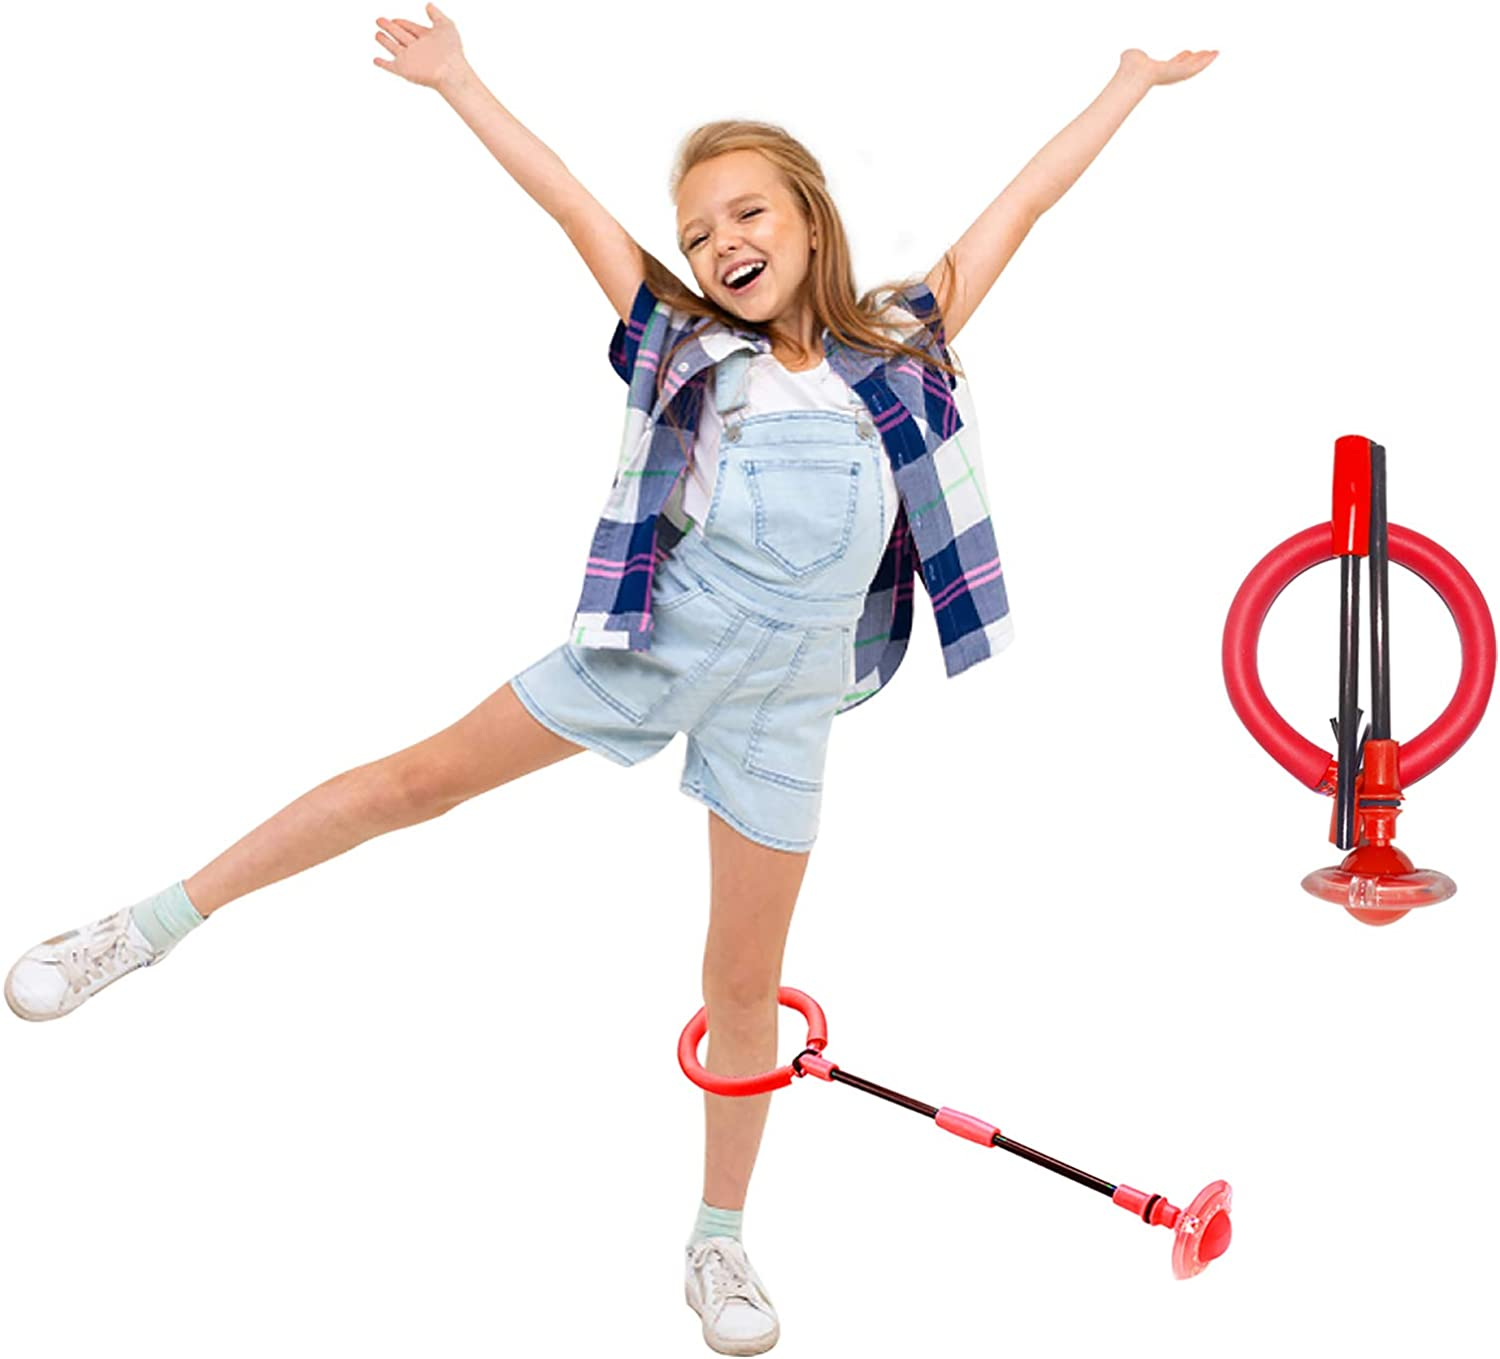 PALA PERRA Ankle Skip Ball for Kids Foldable Skipit Toy Swing Ball Fitness Sports for Boys and Girls Colorful Light Flashing Jumping Ring